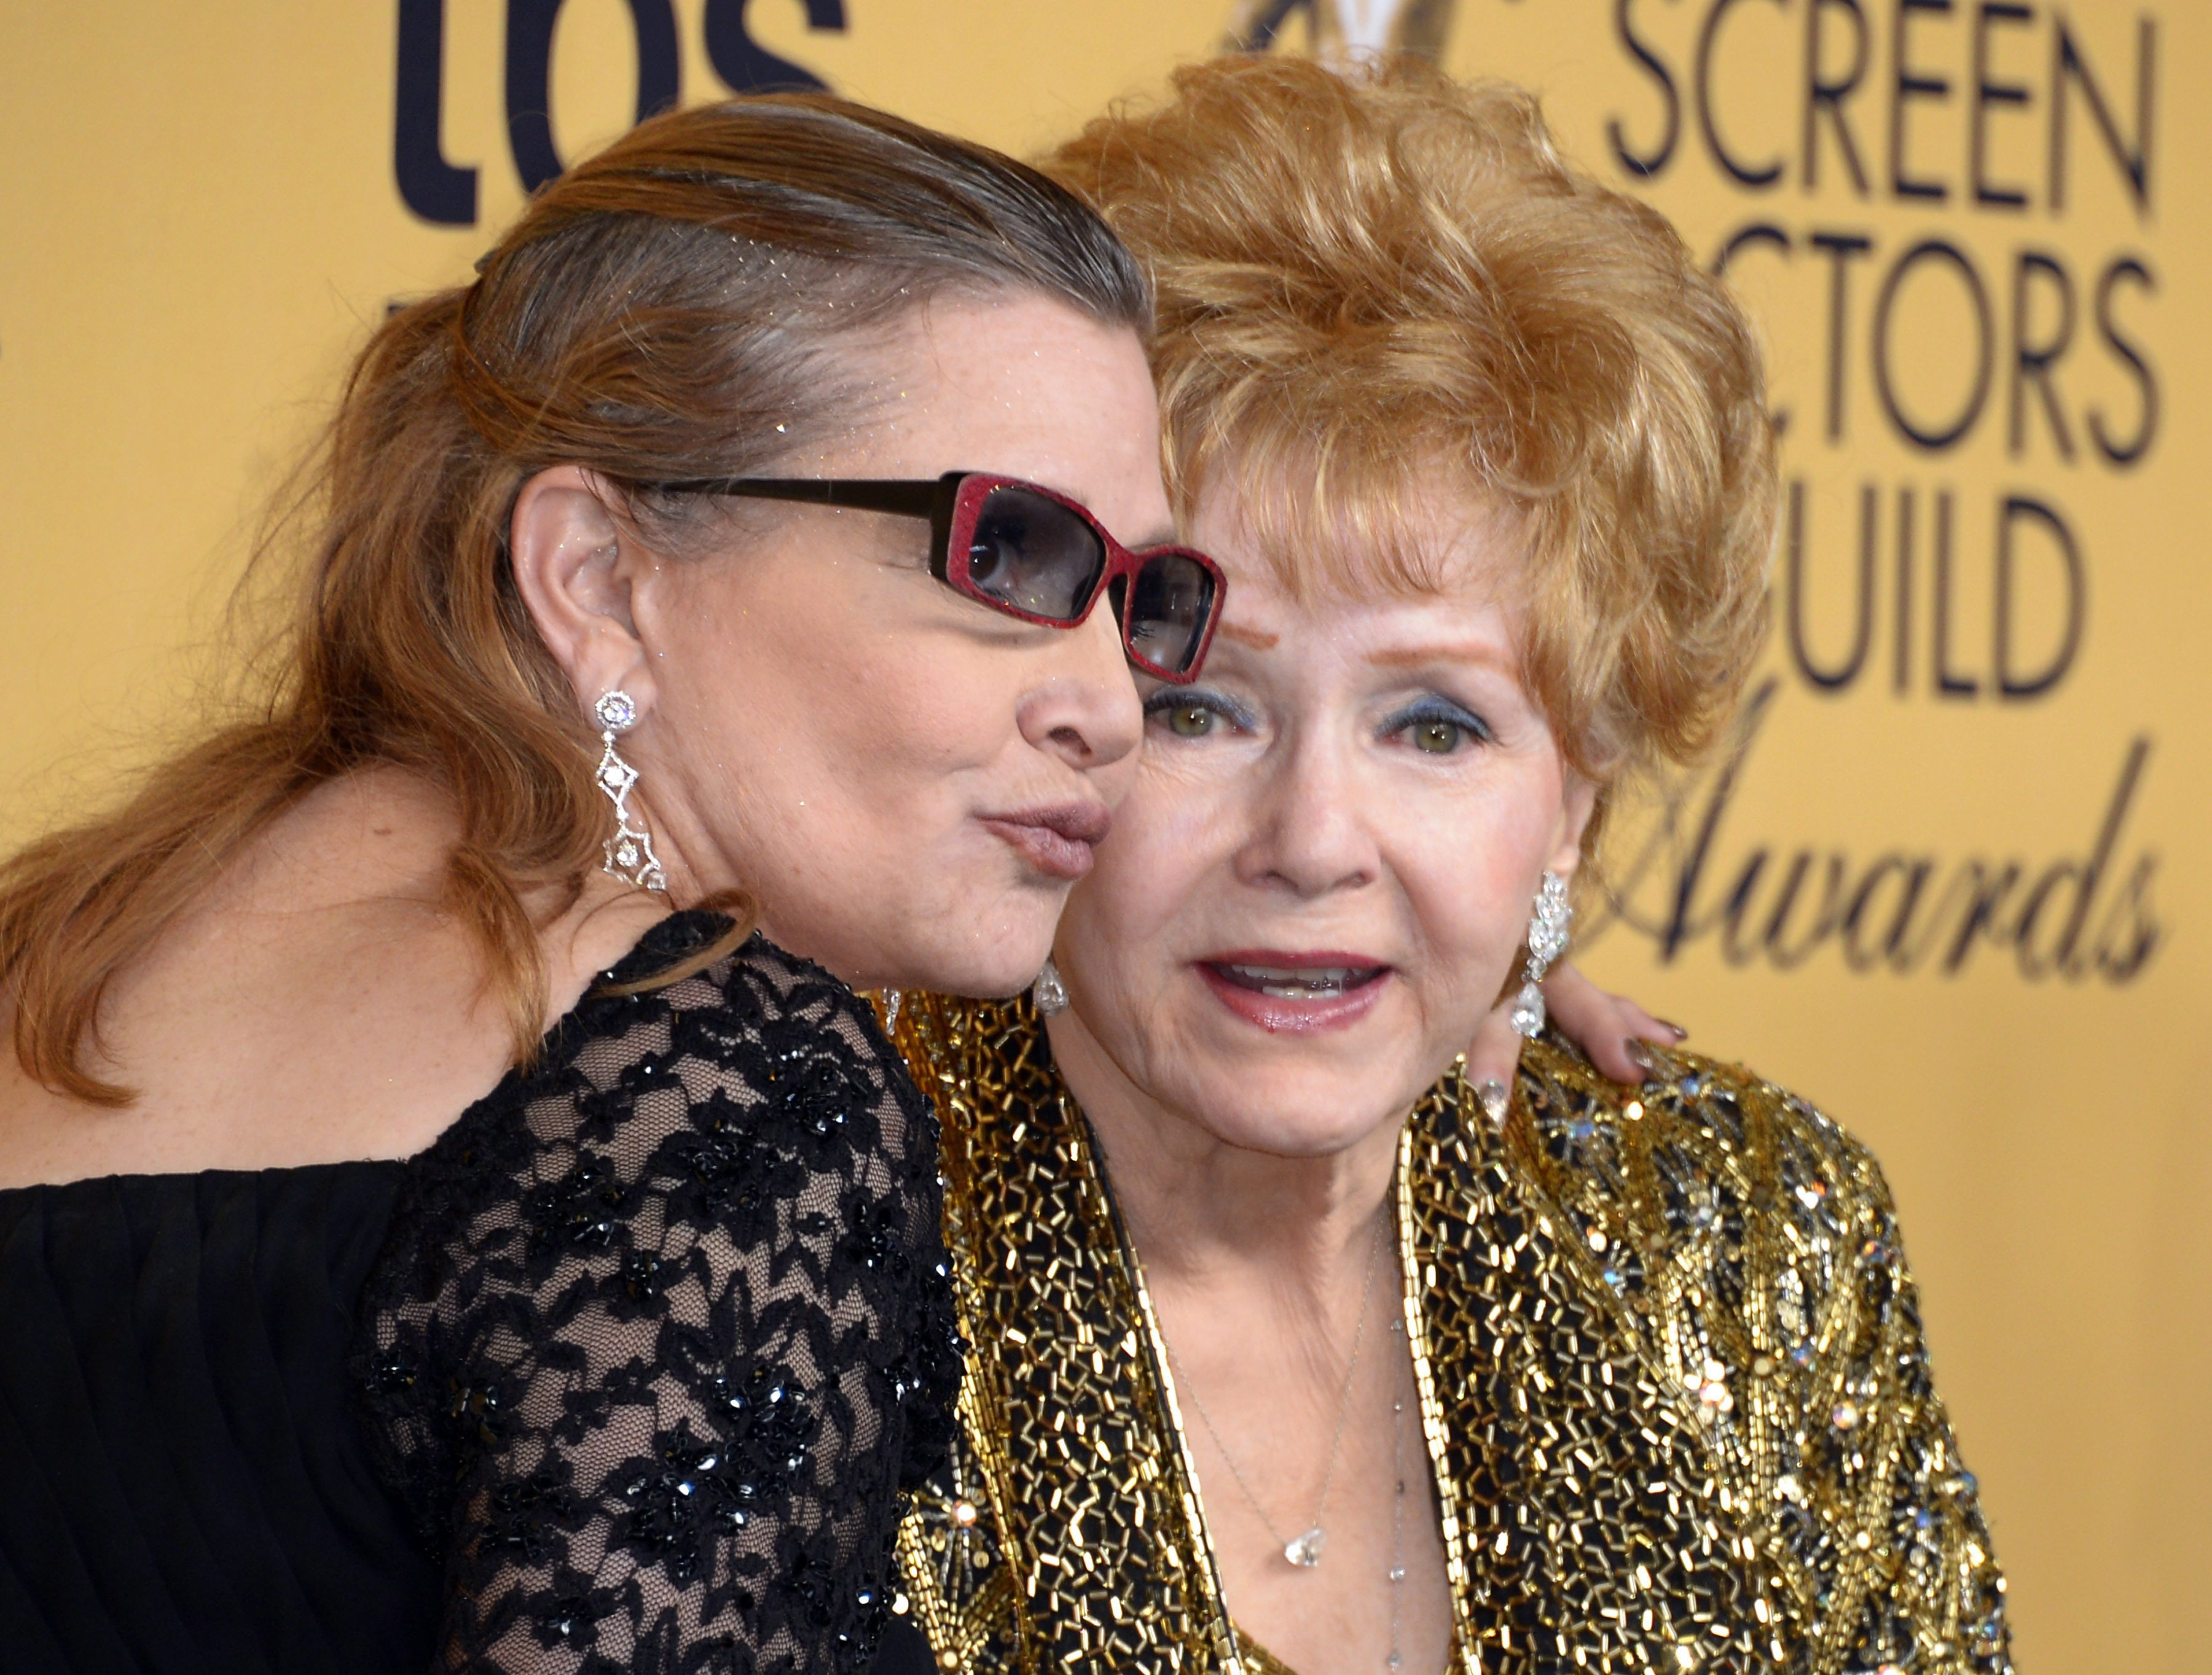 epa05690440 (FILE) - A file picture dated 25 January 2015 shows US actresses Debbie Reynolds (R) and her late daughter Carrie Fisher (L) posing at the 21th Annual Screen Actors Guild Awards ceremony at the Shrine Audito